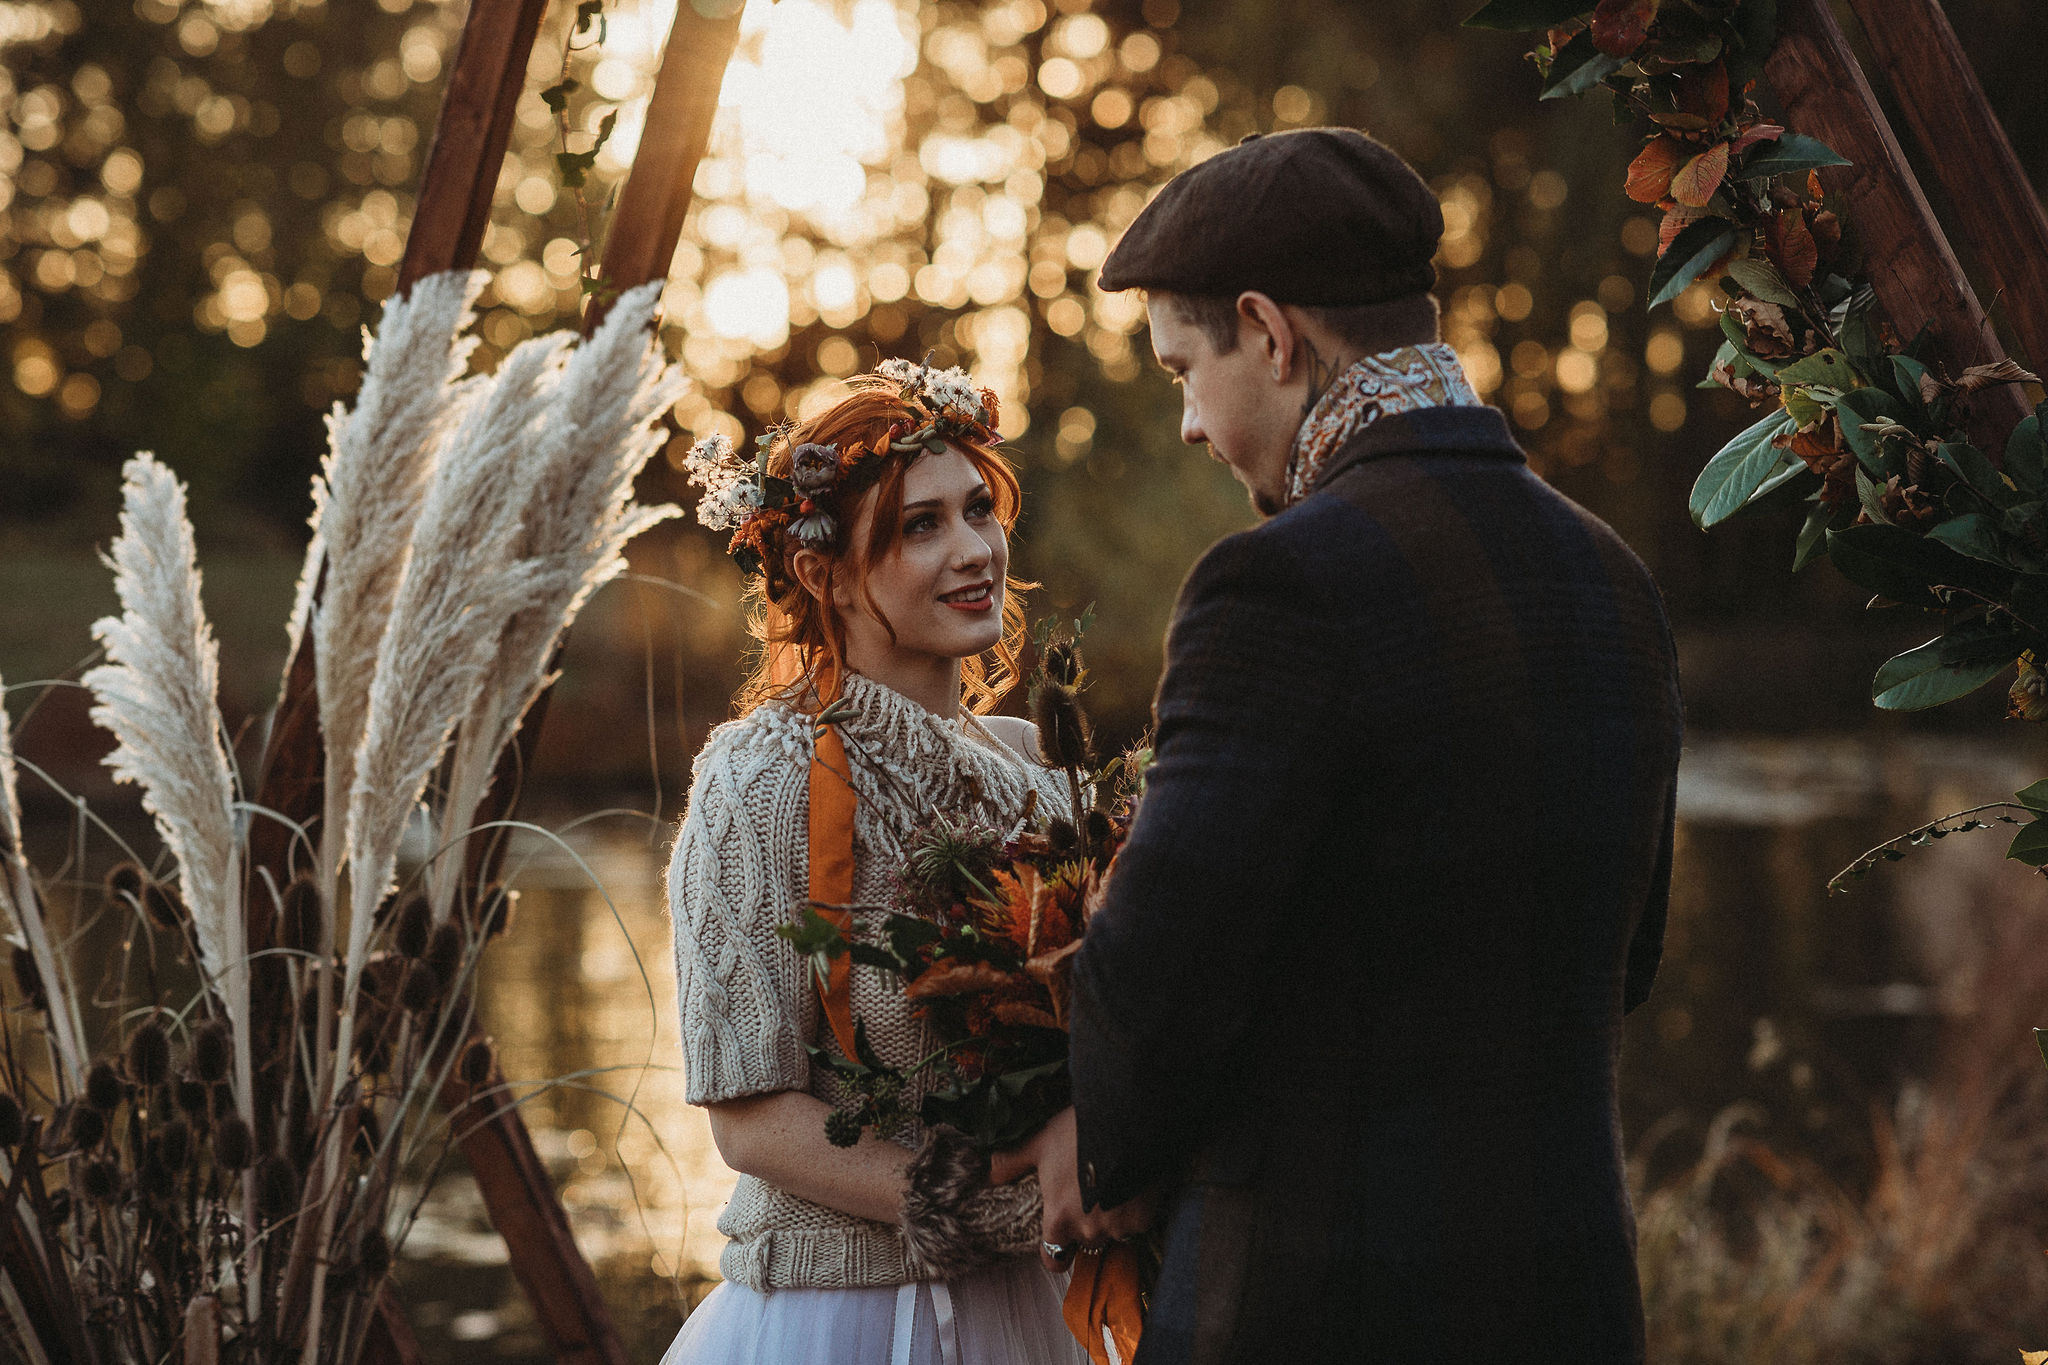 Autumn wedding by lake